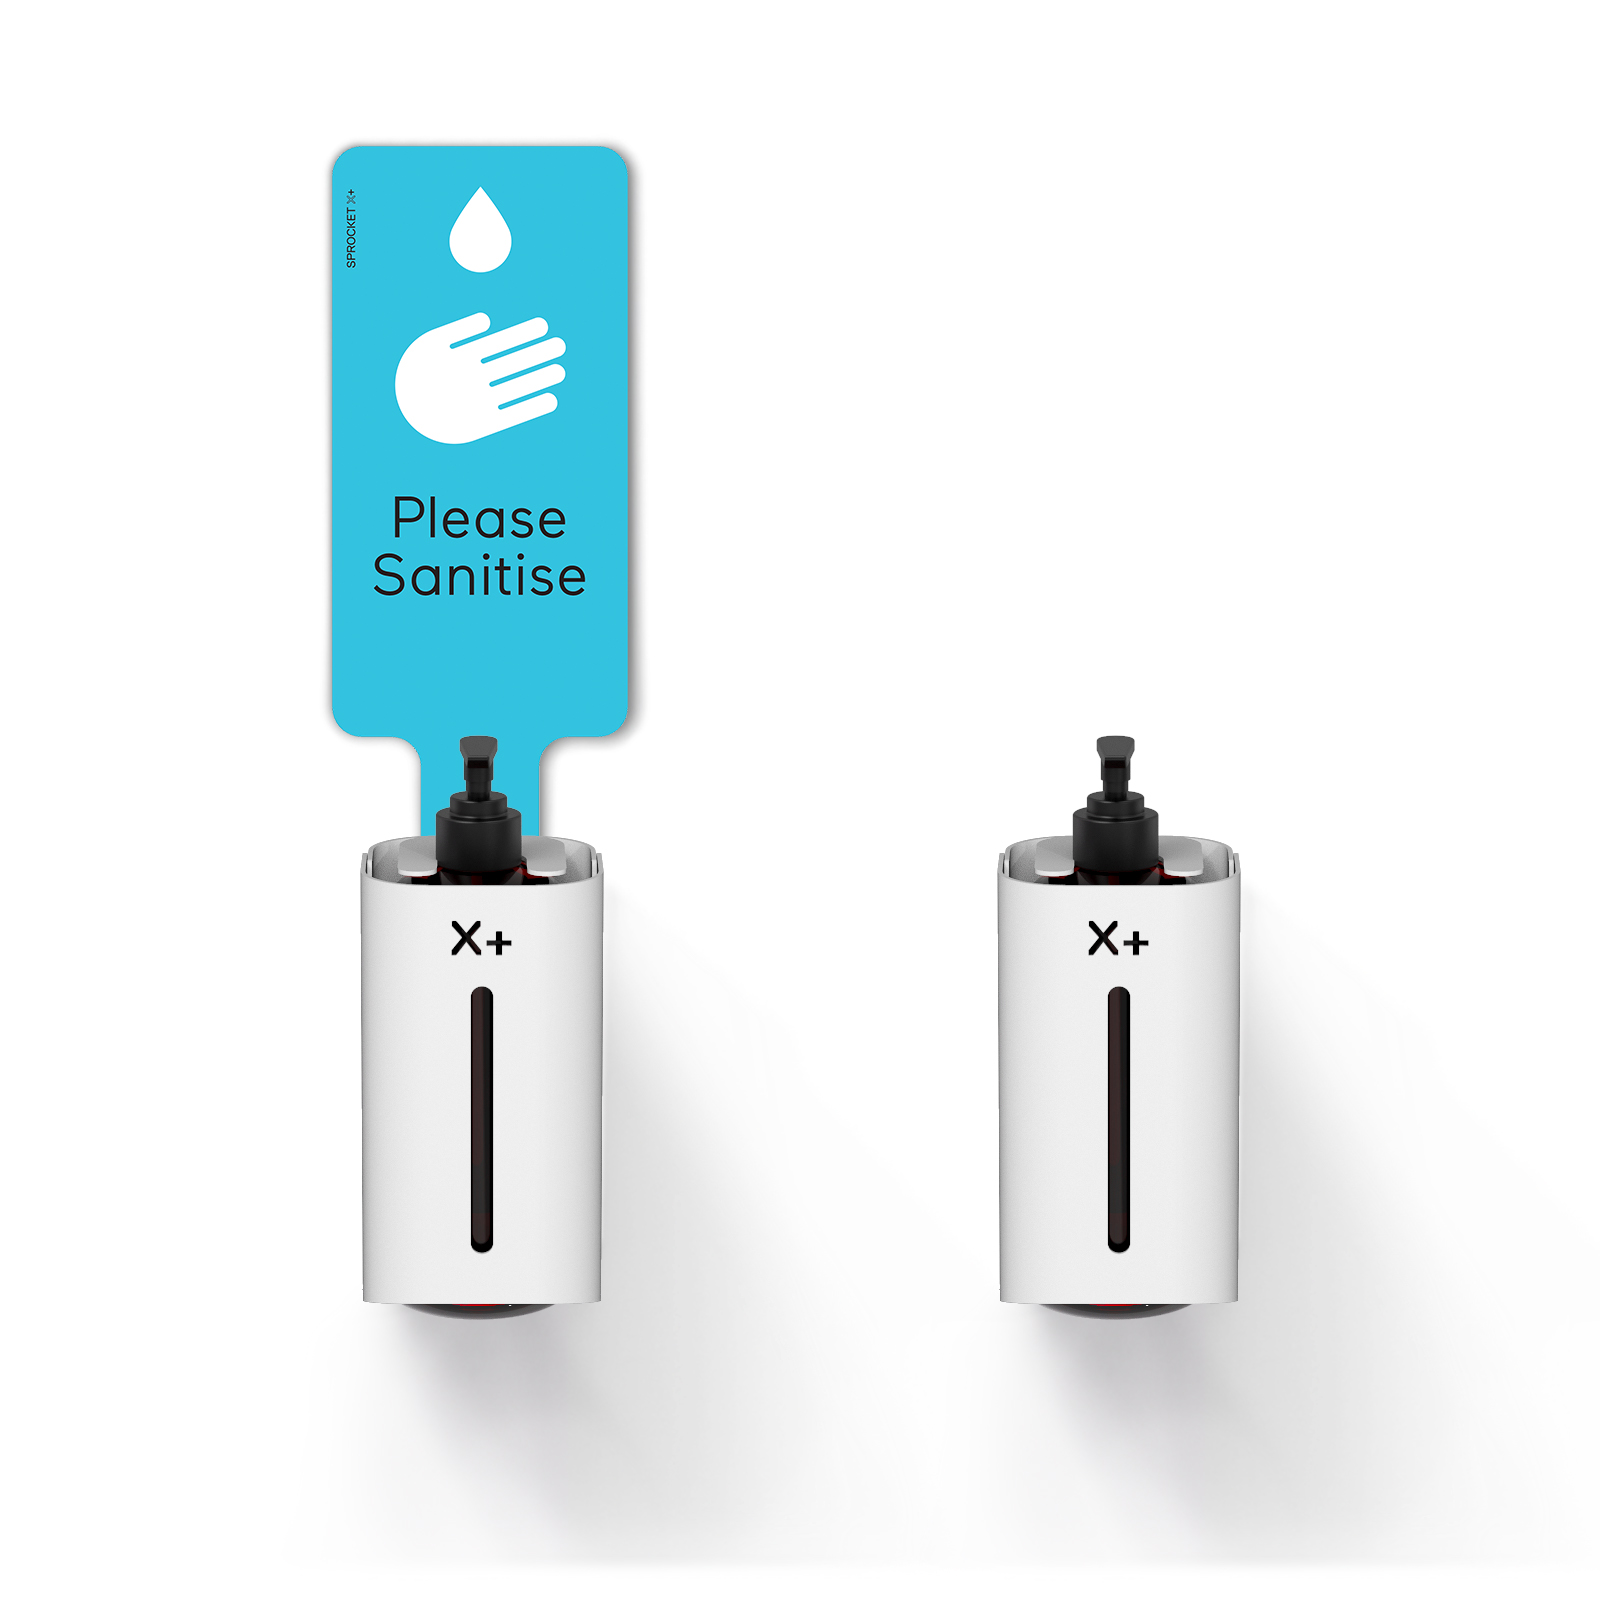 X+ Wall Hand Sanitiser Wall Mount Station with and without Aqua Please Sanitise Sign